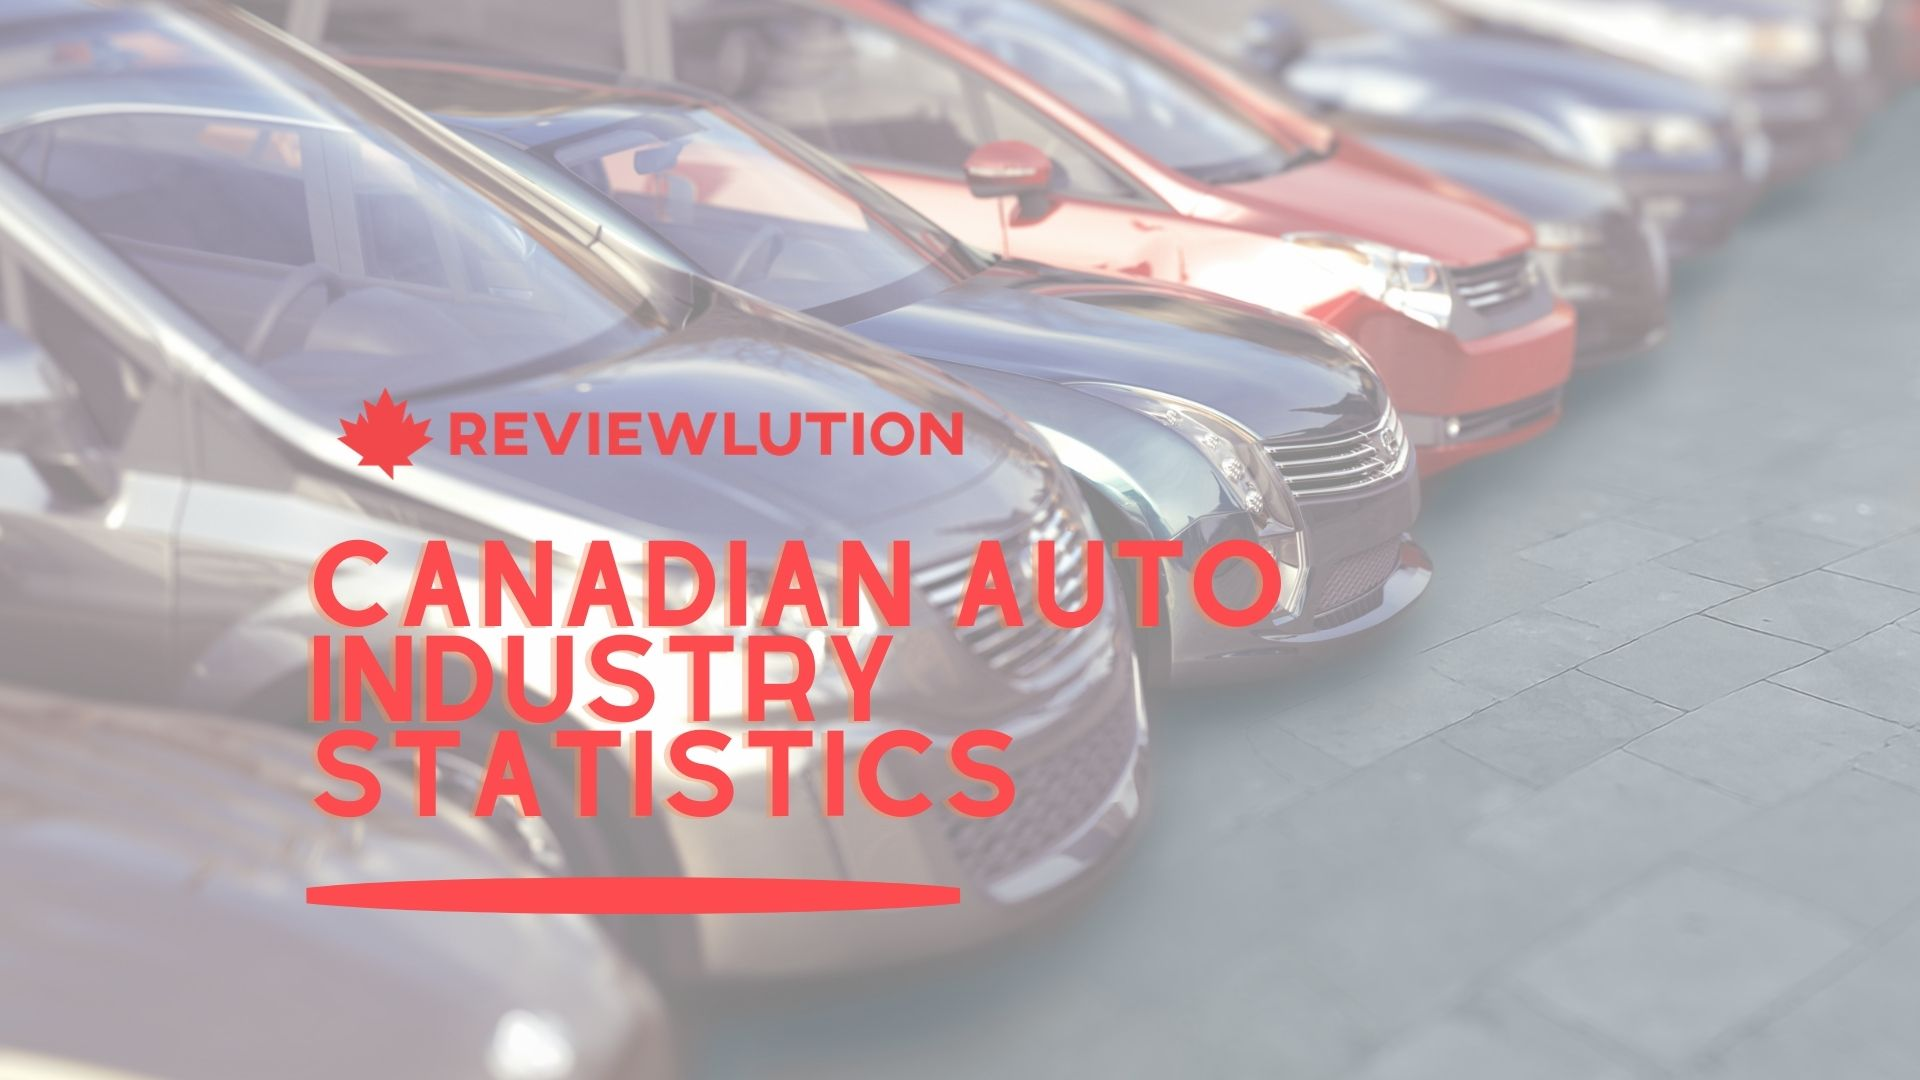 25 Canadian Auto Industry Statistics to Cruise to in 2021